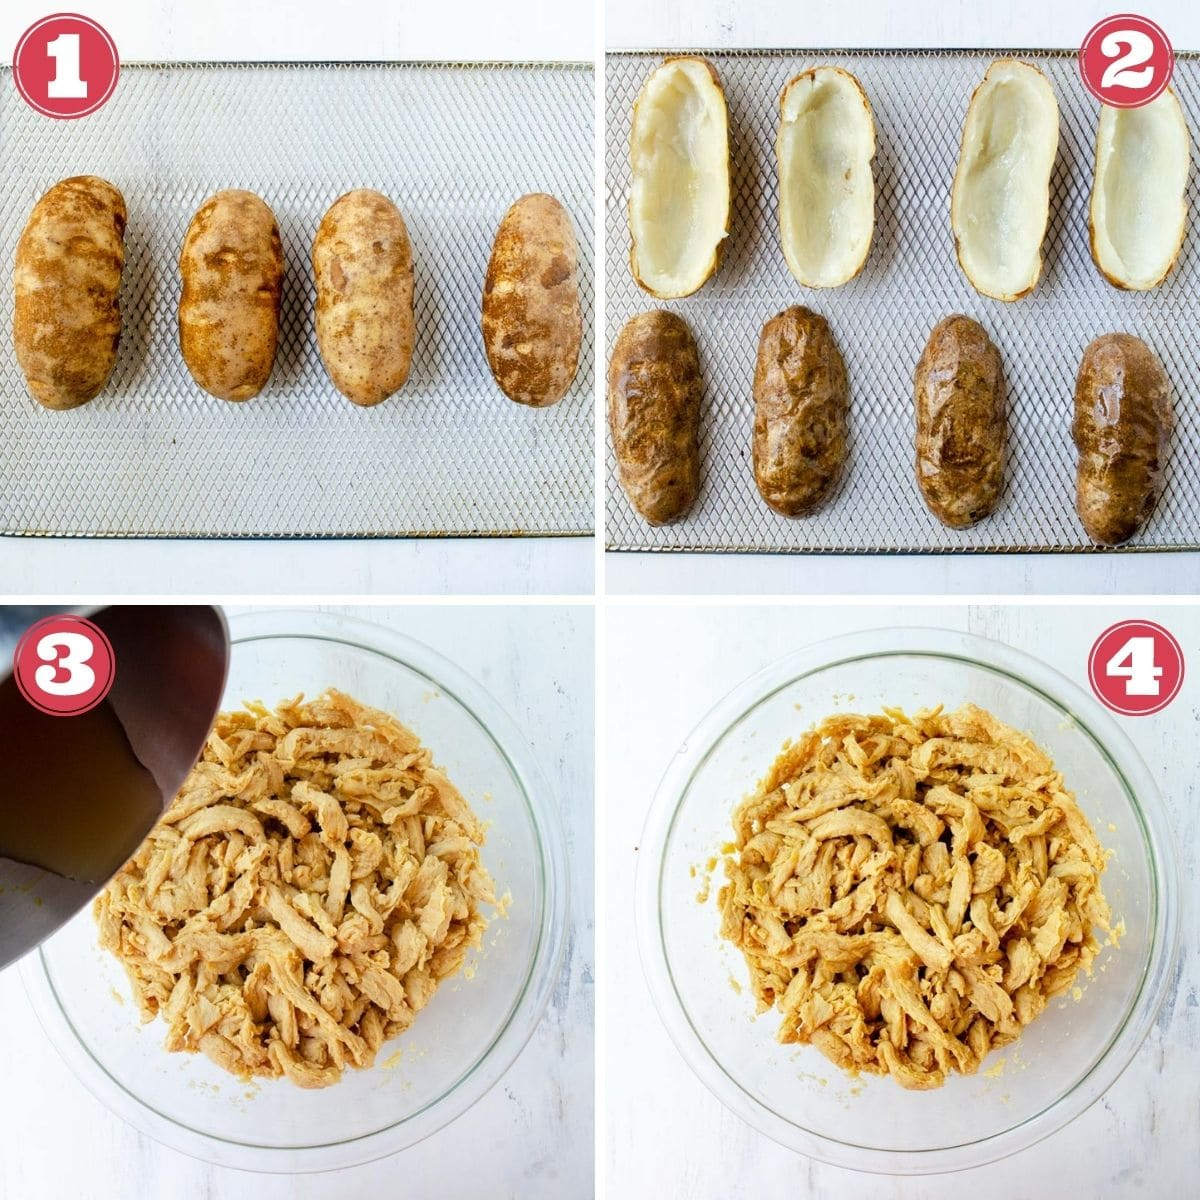 from left to right 4 potatoes on a rack, potatoes scooped out on a rack, hot broth being poured on soy curls, a bowl of soy curls soaking